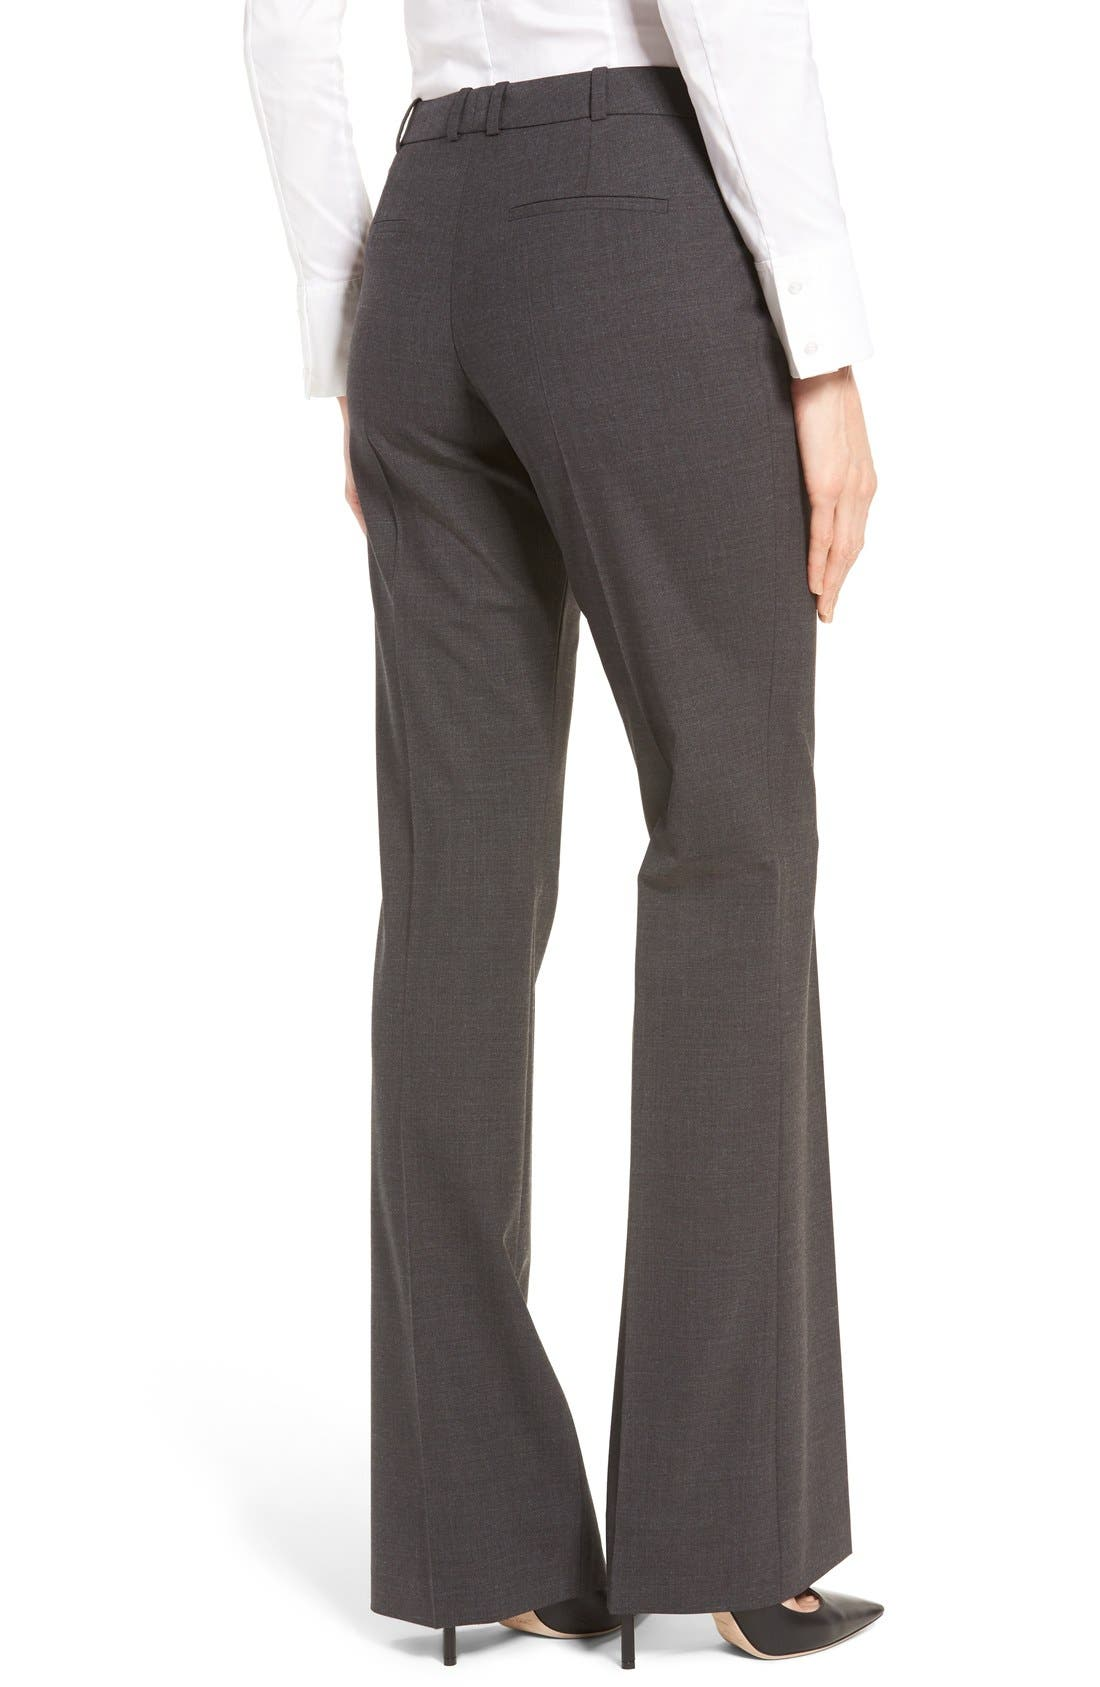 BOSS, Tulea3 Tropical Stretch Wool Trousers, Alternate thumbnail 8, color, CHARCOAL